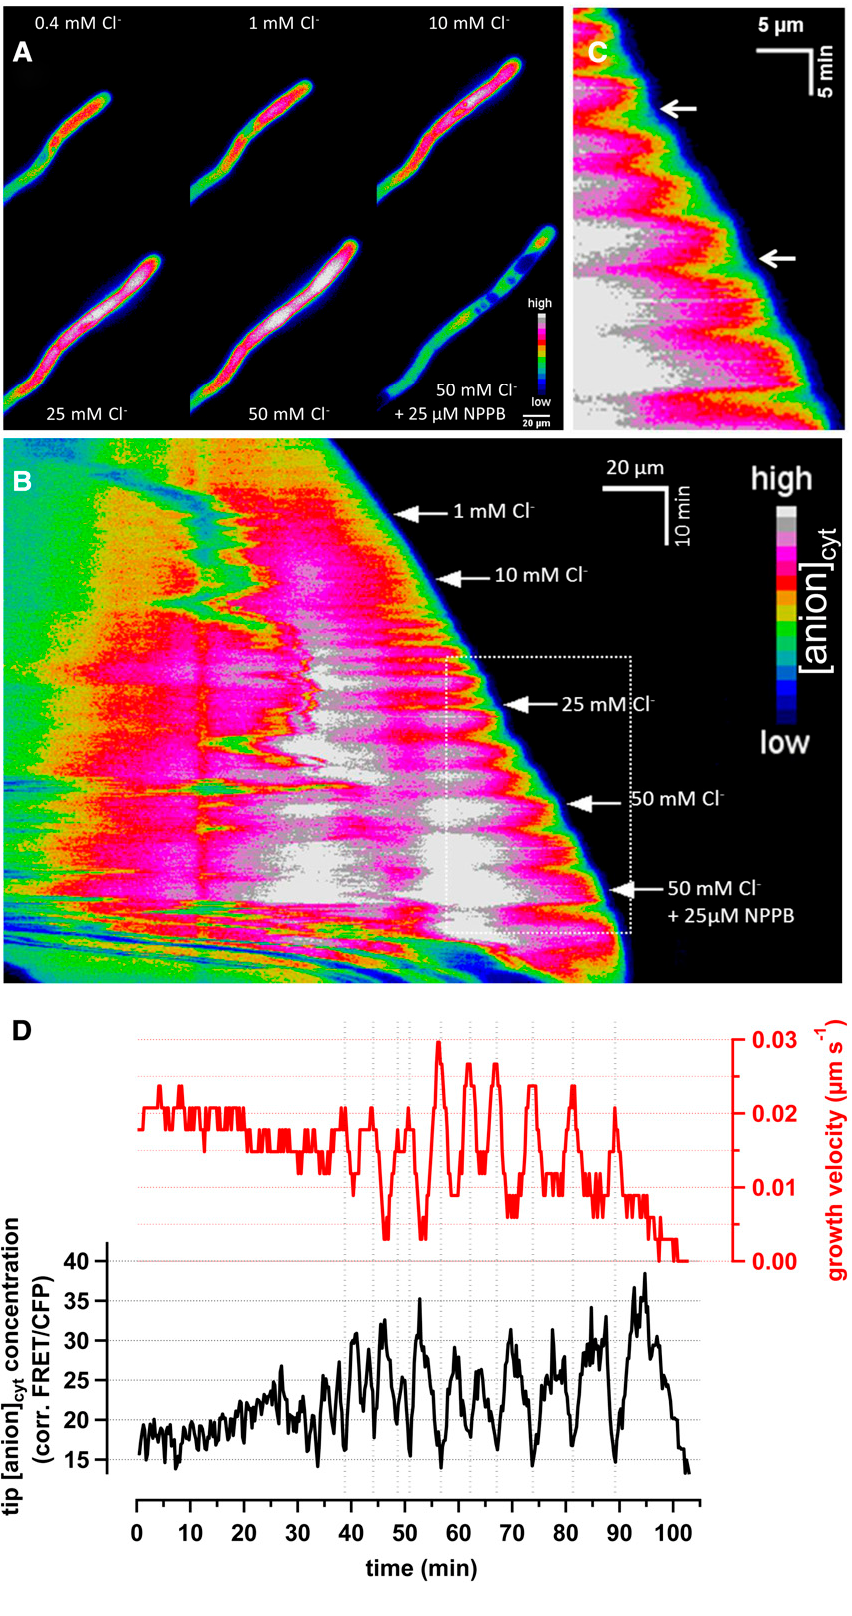 Figure 1. Spectroscopic Detection of a Cytosolic Chloride Gradient in Pollen Tubes.